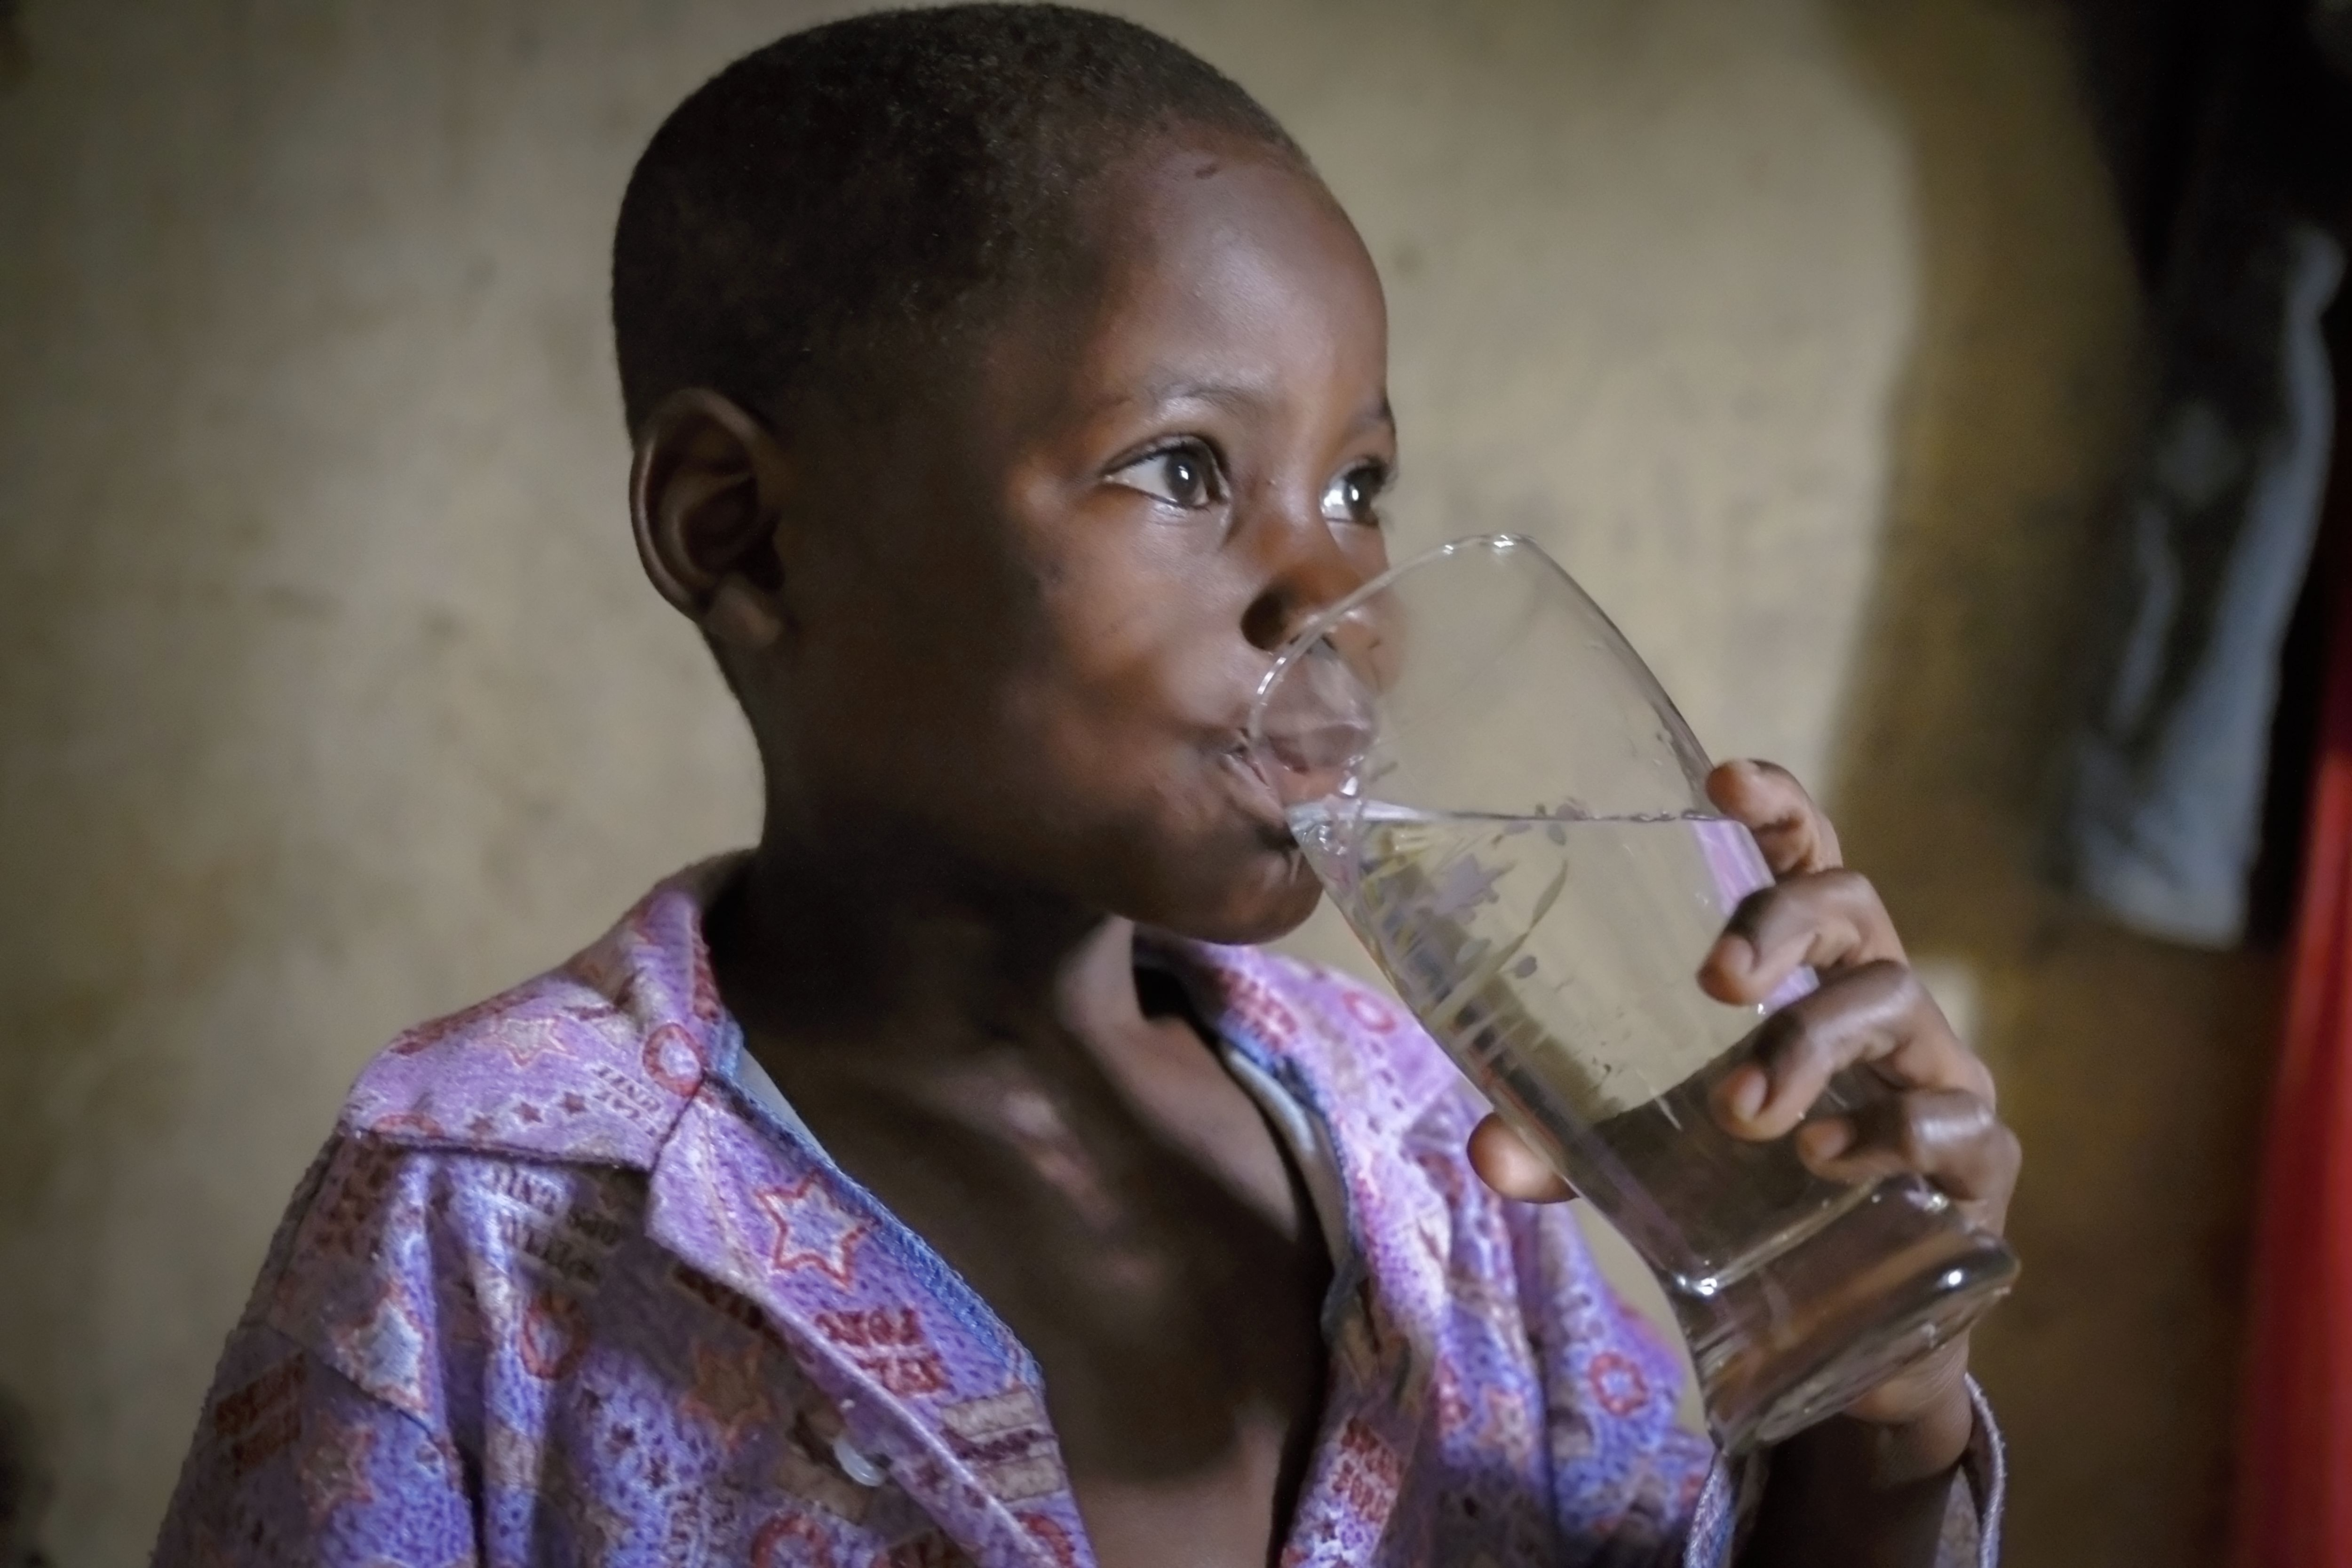 Evans Kawumbu drinking a glass of water